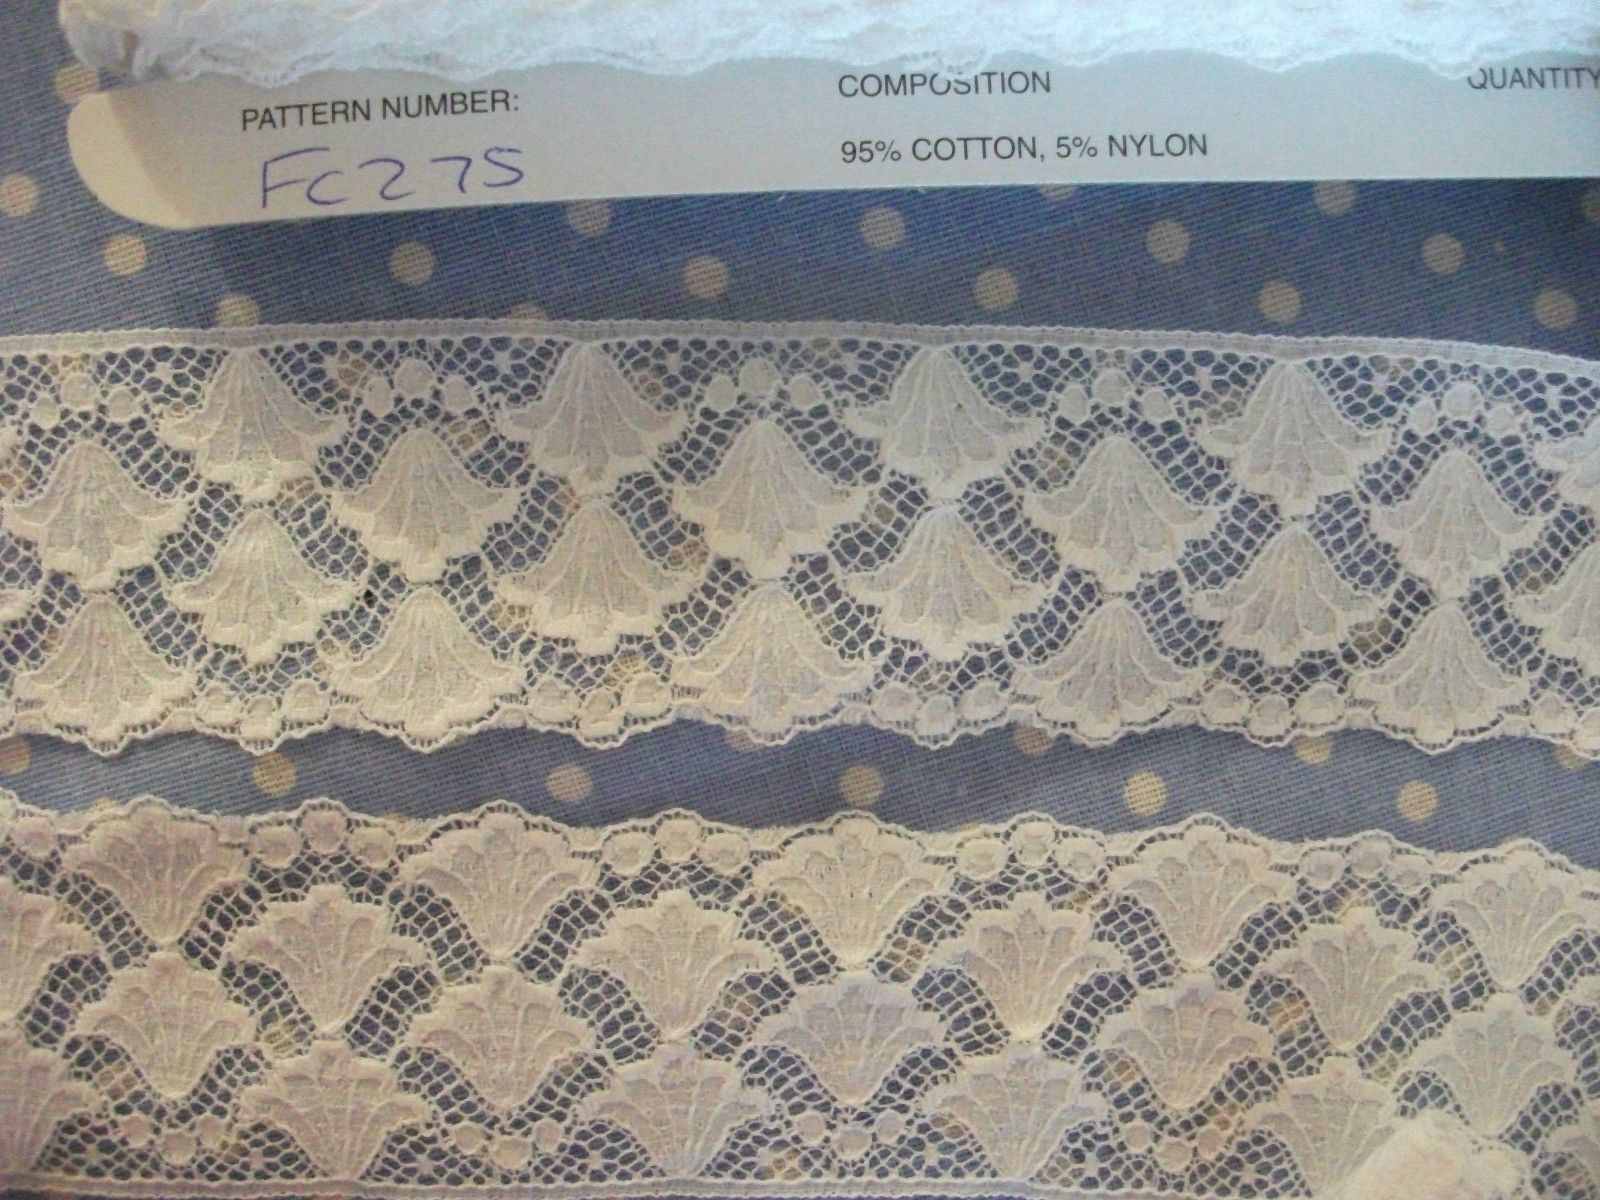 Exclusive FC275 OFF  White Cotton Nottingham Valenciennes Lace by Cluny Lace Co